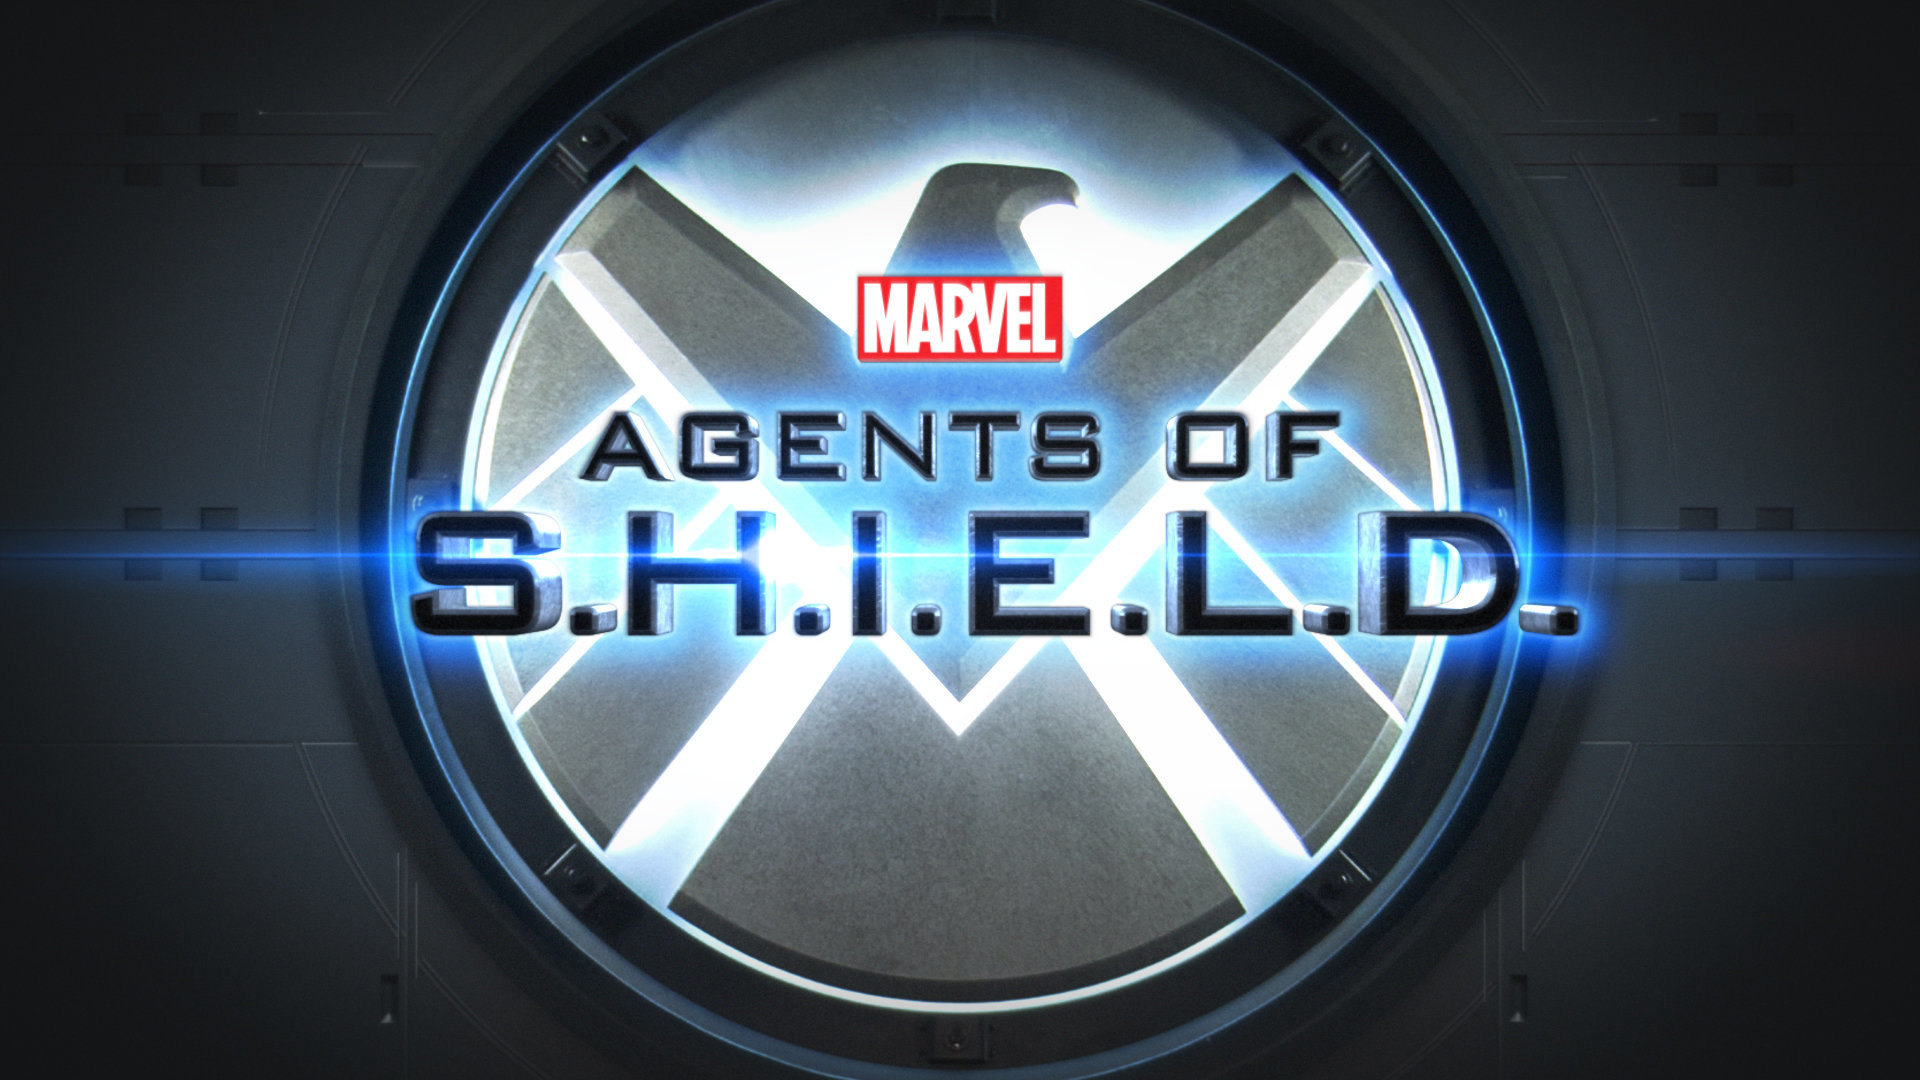 Marvel S Agents Of Shield Wallpapers 1920x1080 Full Hd 1080p